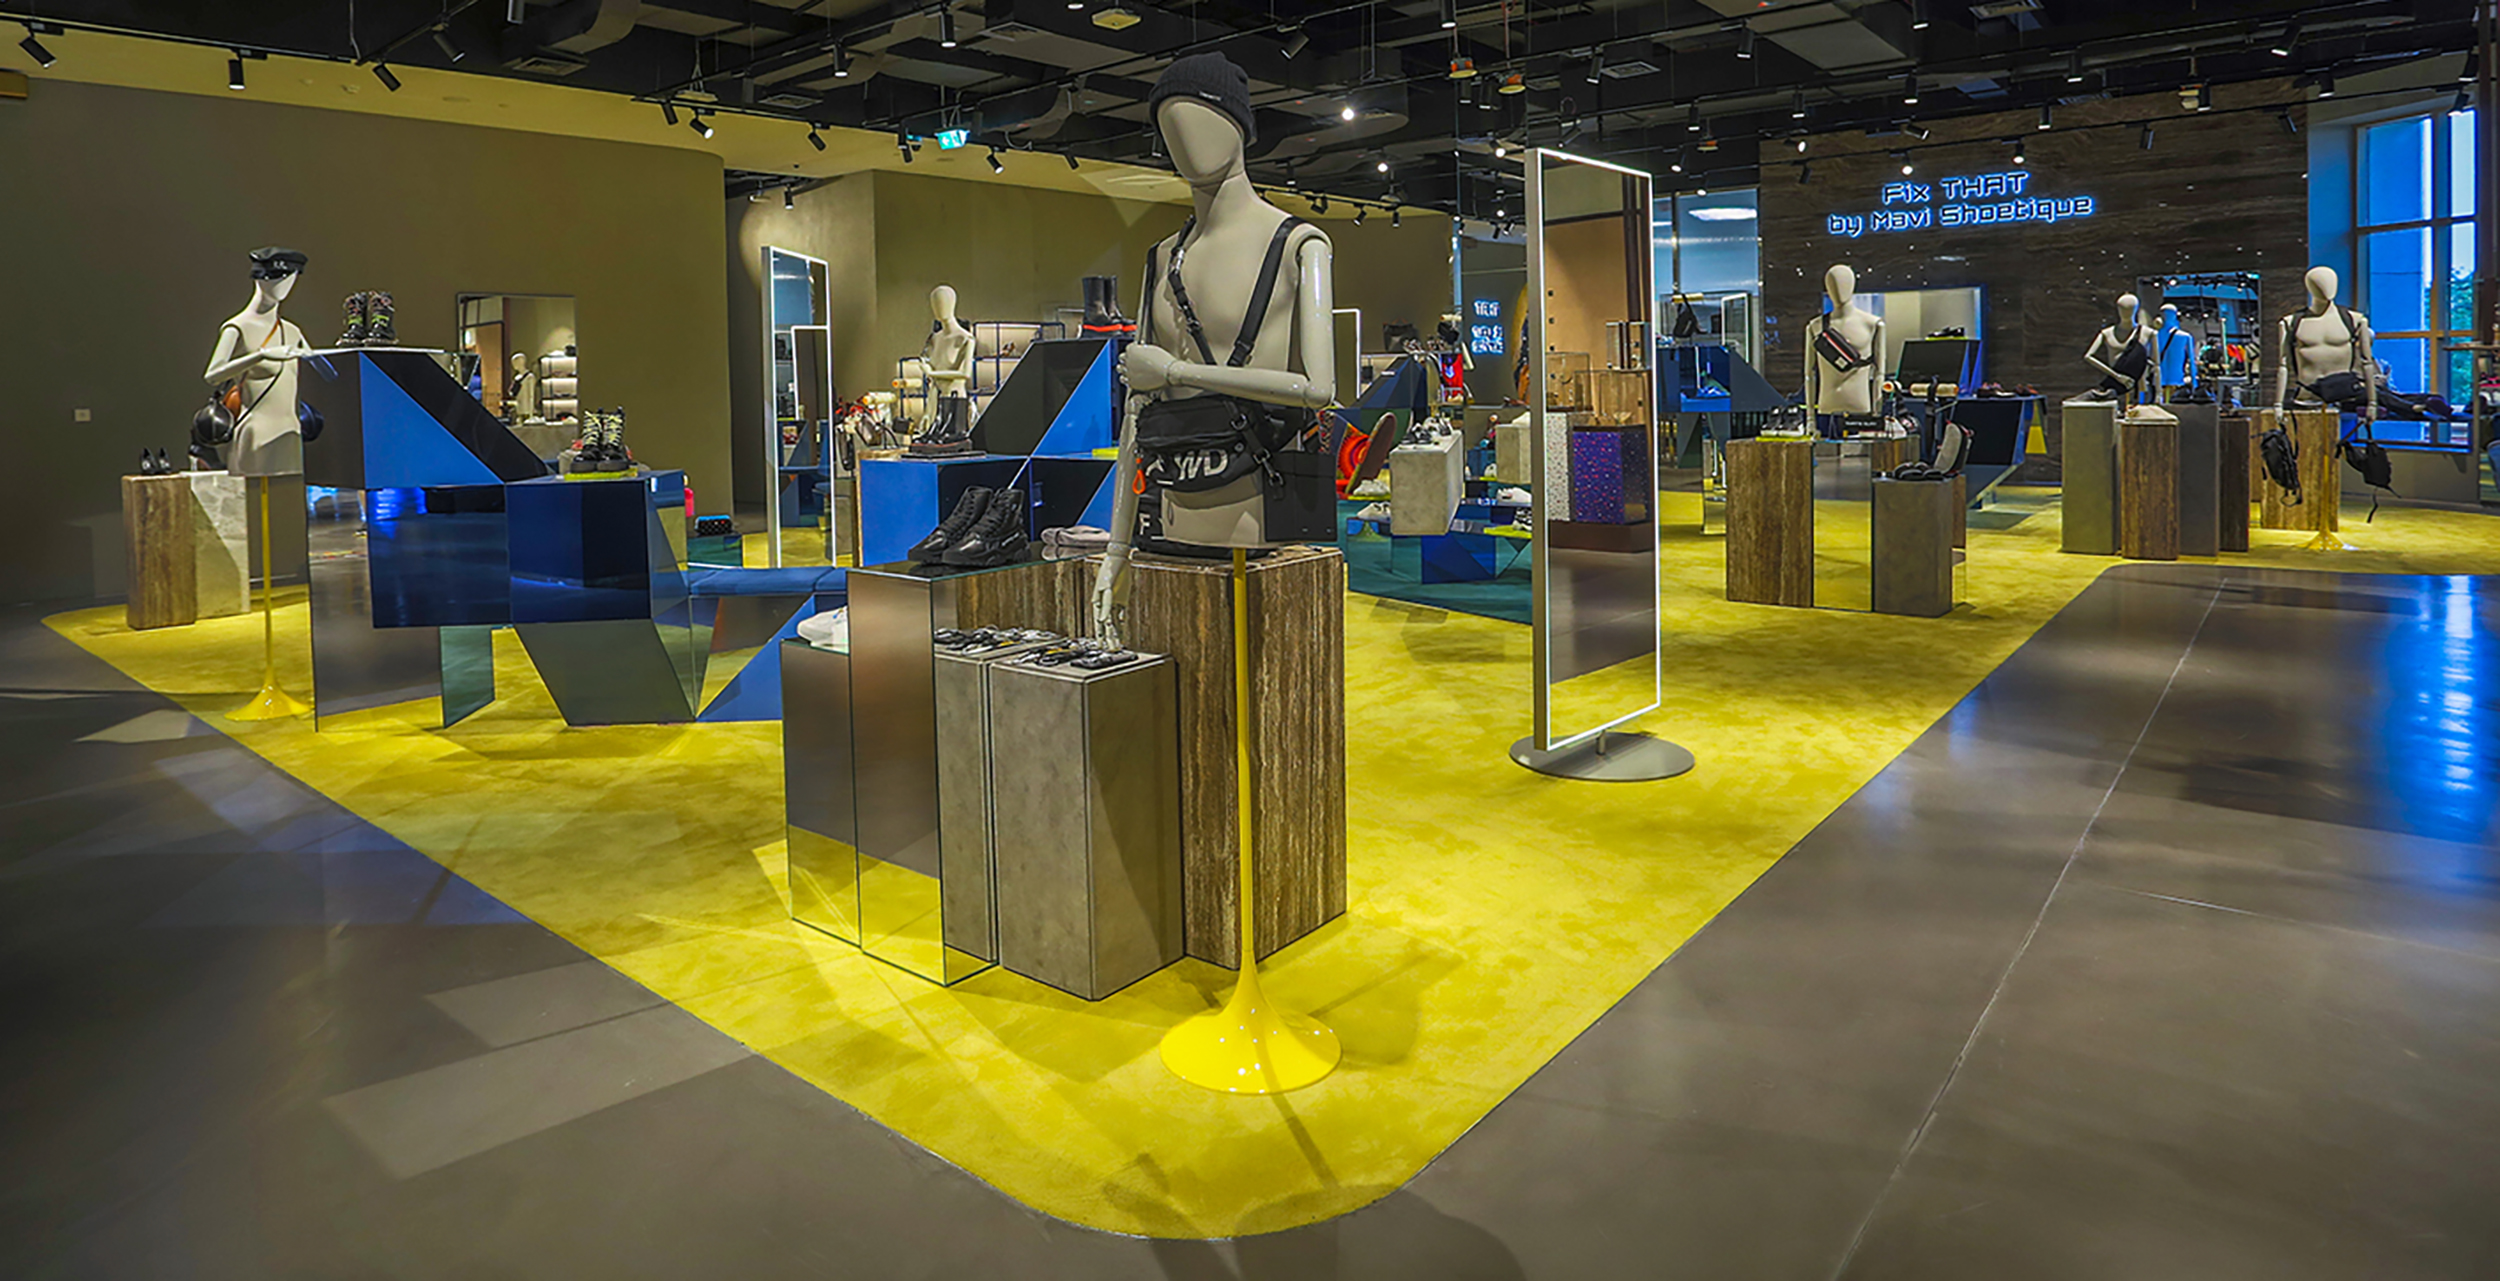 Dubai's THAT Concept Store is a one-stop destination for Dubai's fashionistas and trendsetters.